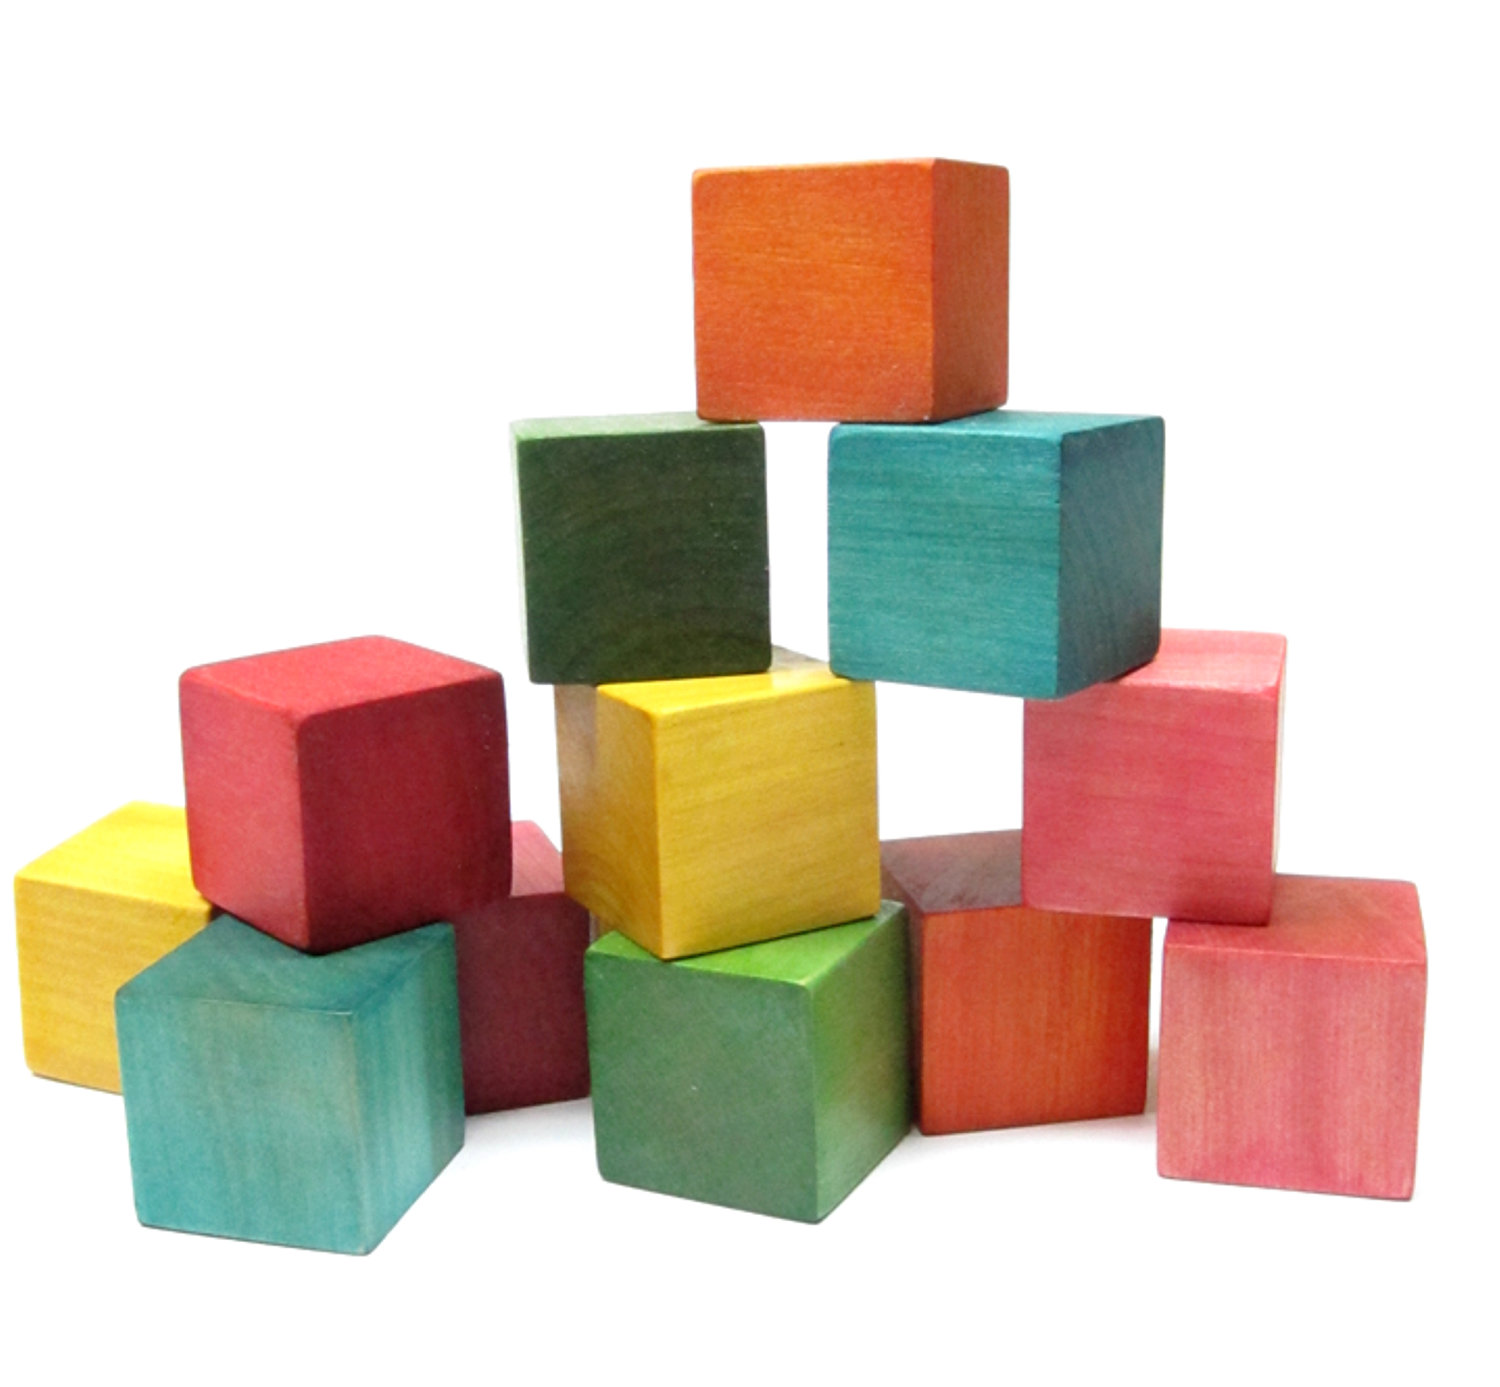 Babies toy blocks